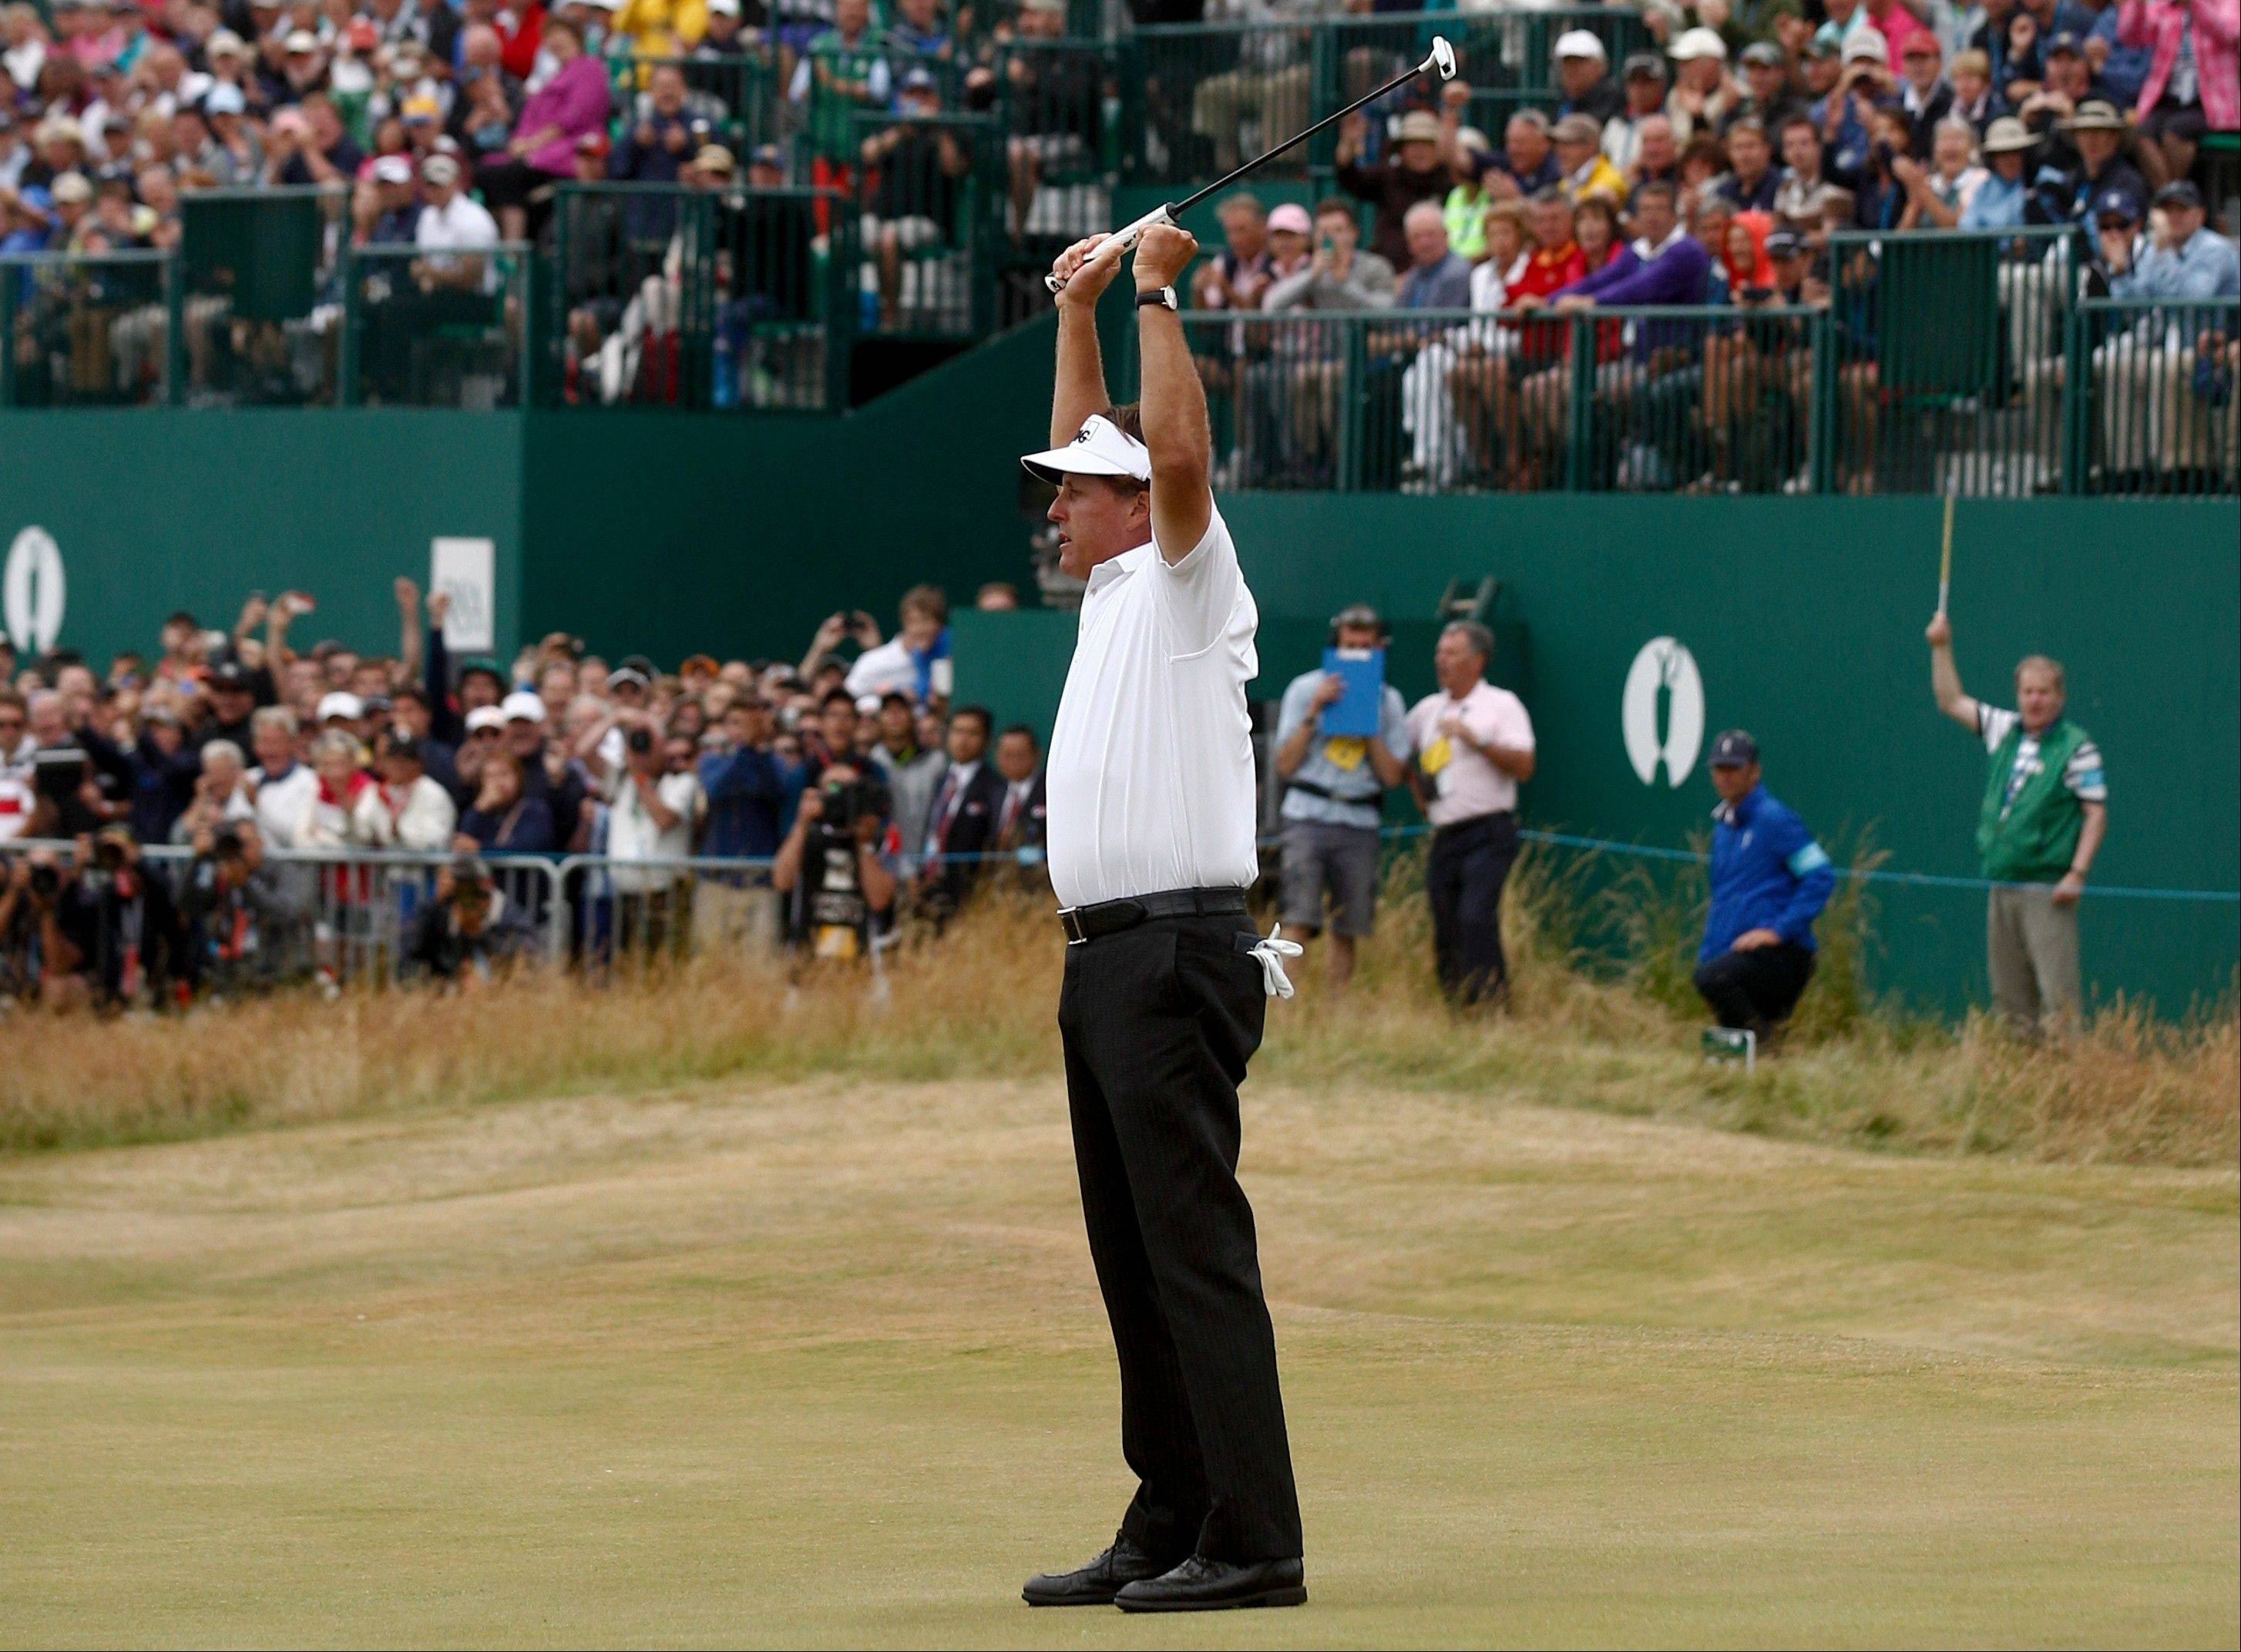 Phil Mickelson celebrates Sunday after his final putt on the 18th green during the final round of the British Open at Muirfield.